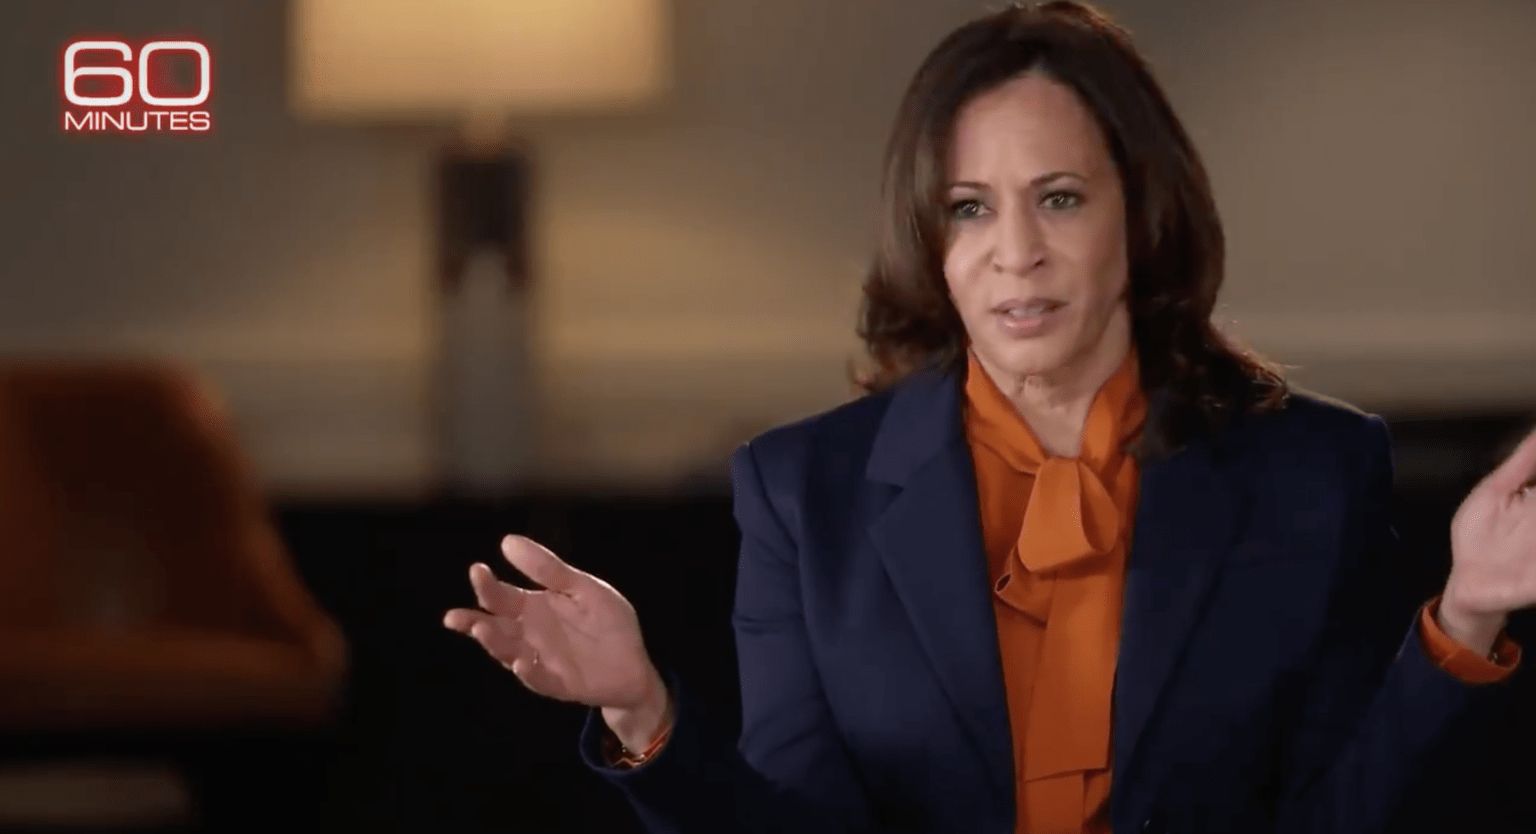 Kamala Harris caught spreading multiple lies about President Trump on 60 Minutes - here they are